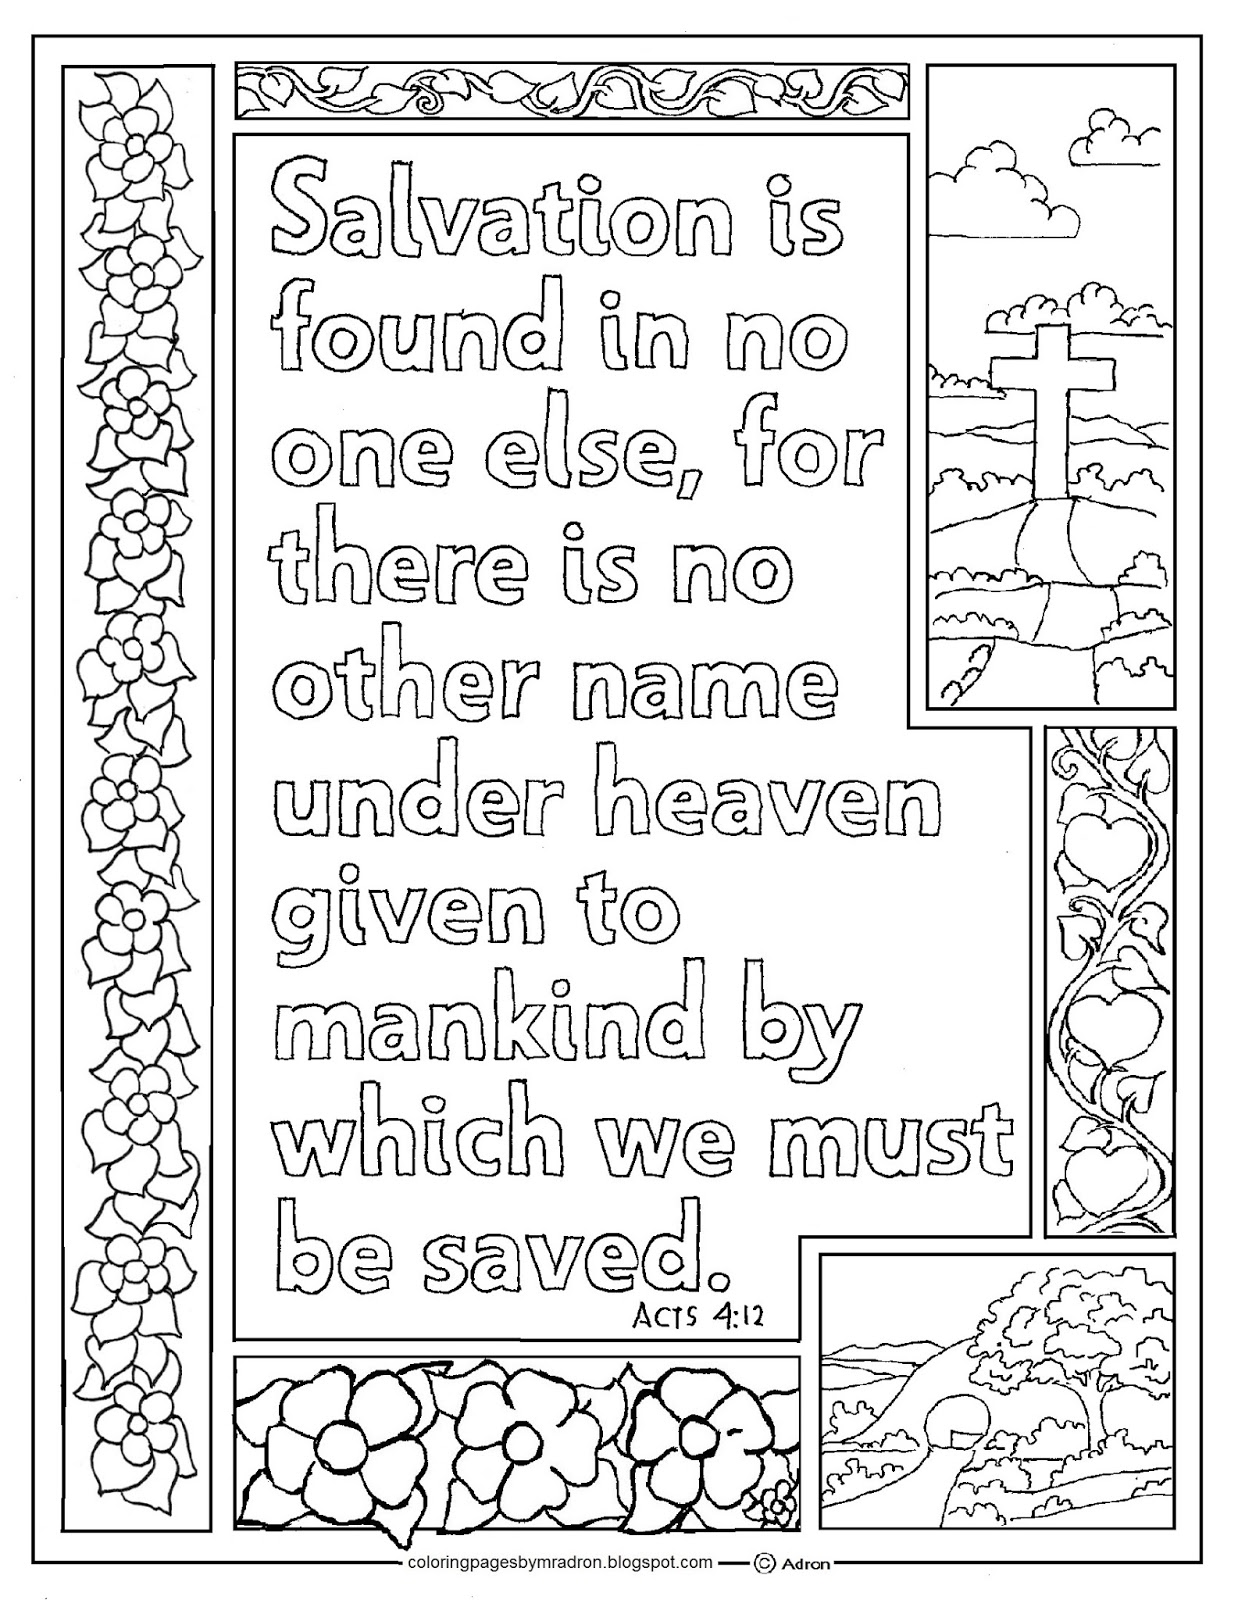 acts 3 1 10 coloring page - coloring pages for kids by mr adron acts 4 12 print and